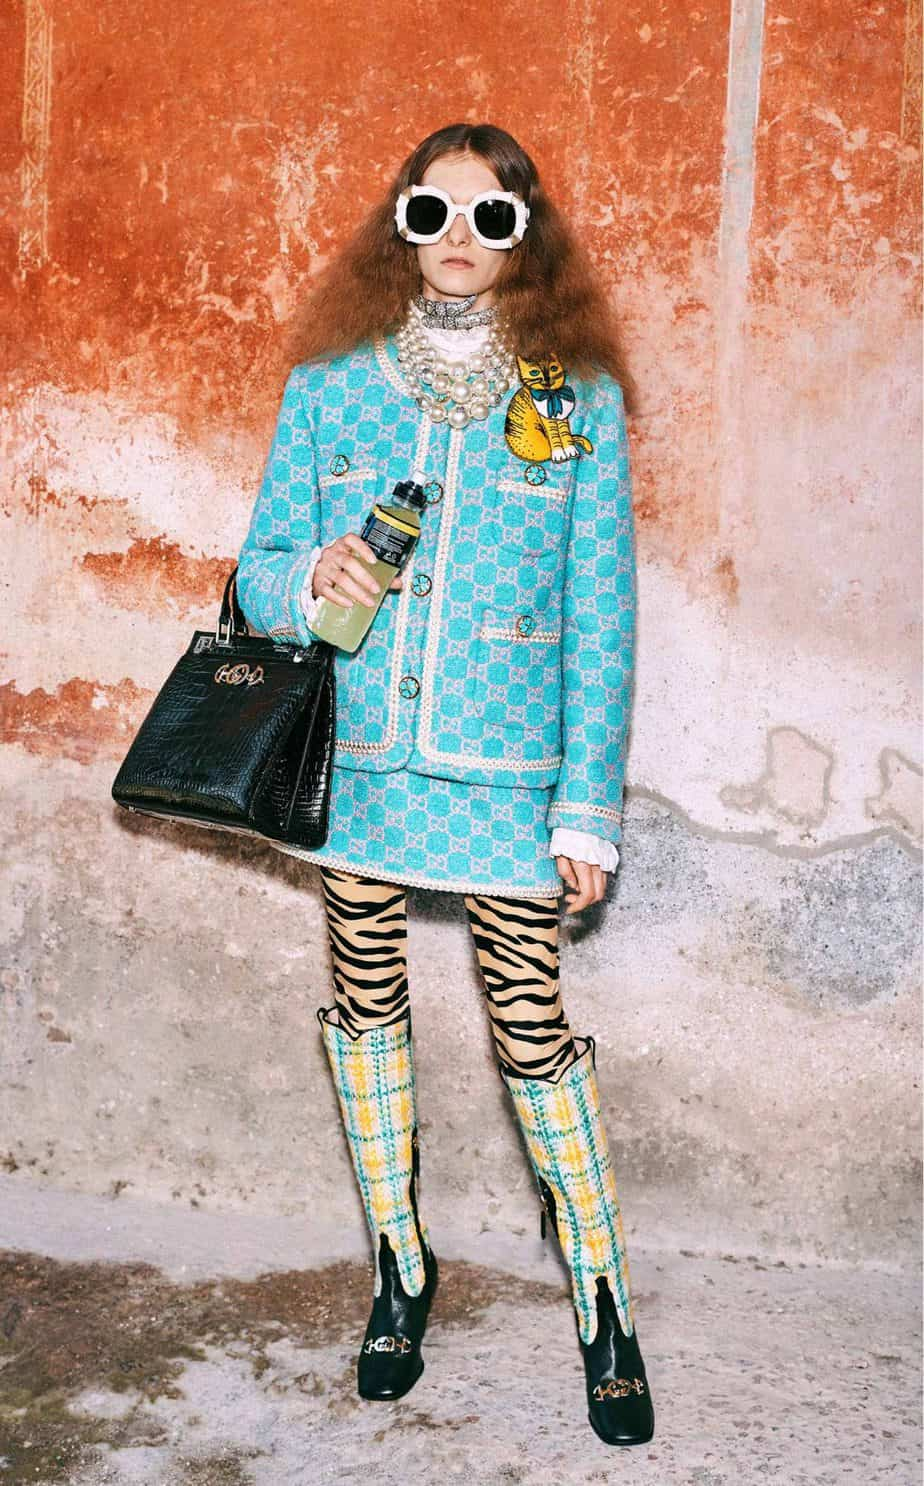 GUCCI, FALL 2019. WOMEN'S FASHION, Photographer Harmony Korine, Art Director, Christopher Simmonds - 6